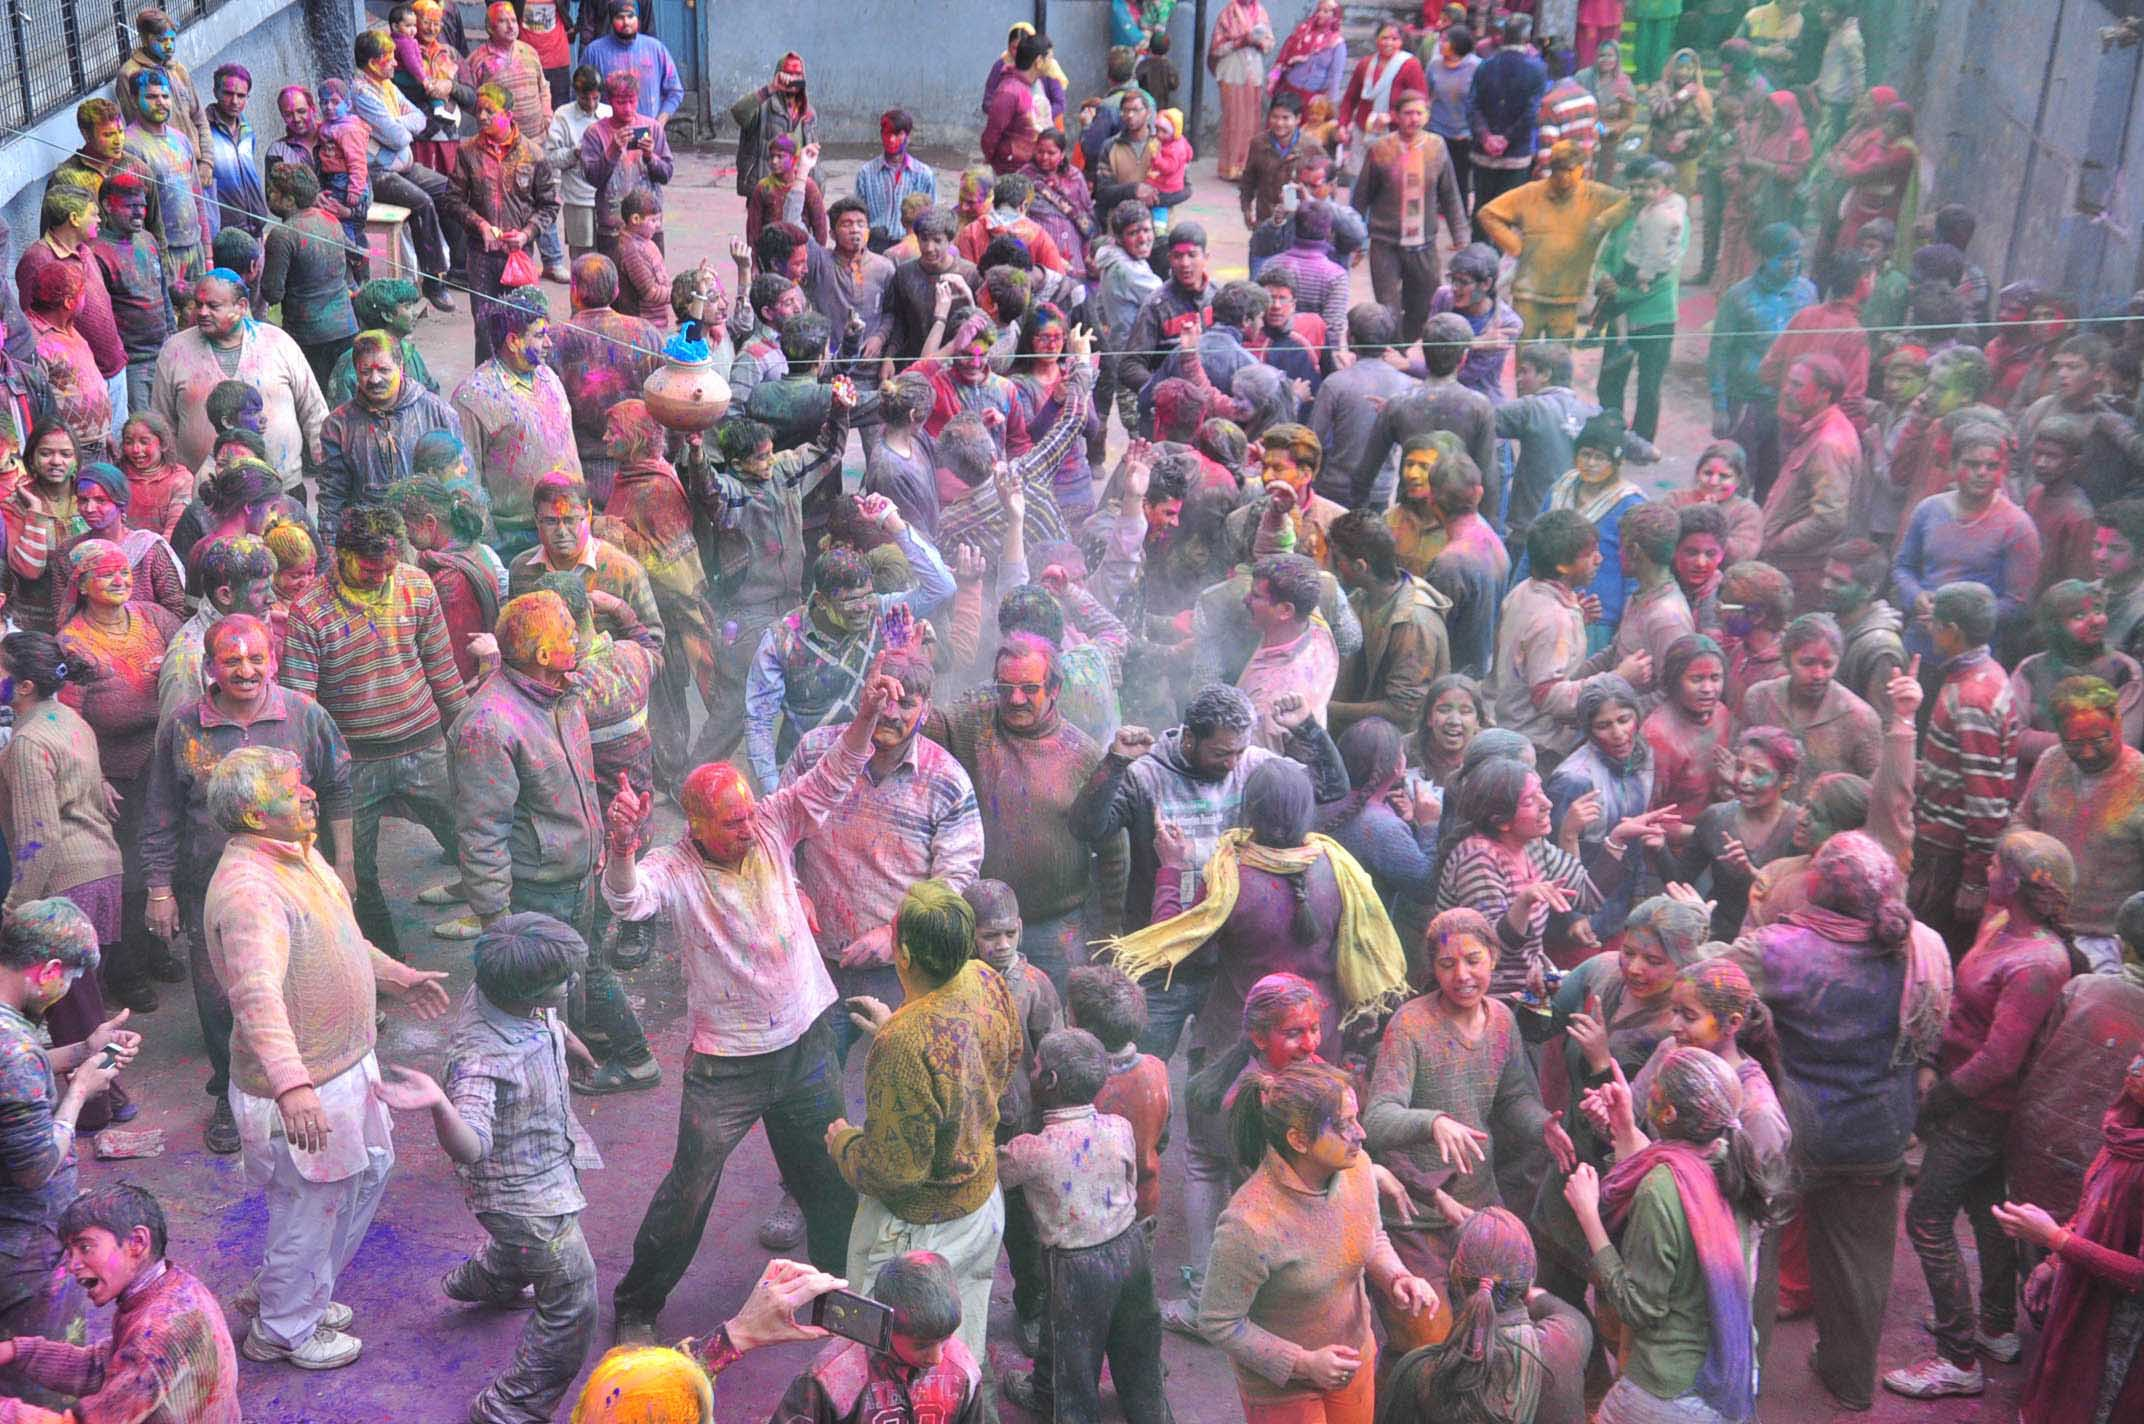 People celebrate Holi festival at Radha Krishan Temple on March 6, 2015 in Shimla, India. Photo by Santosh Rawat/Hindustan Times via Getty Images.